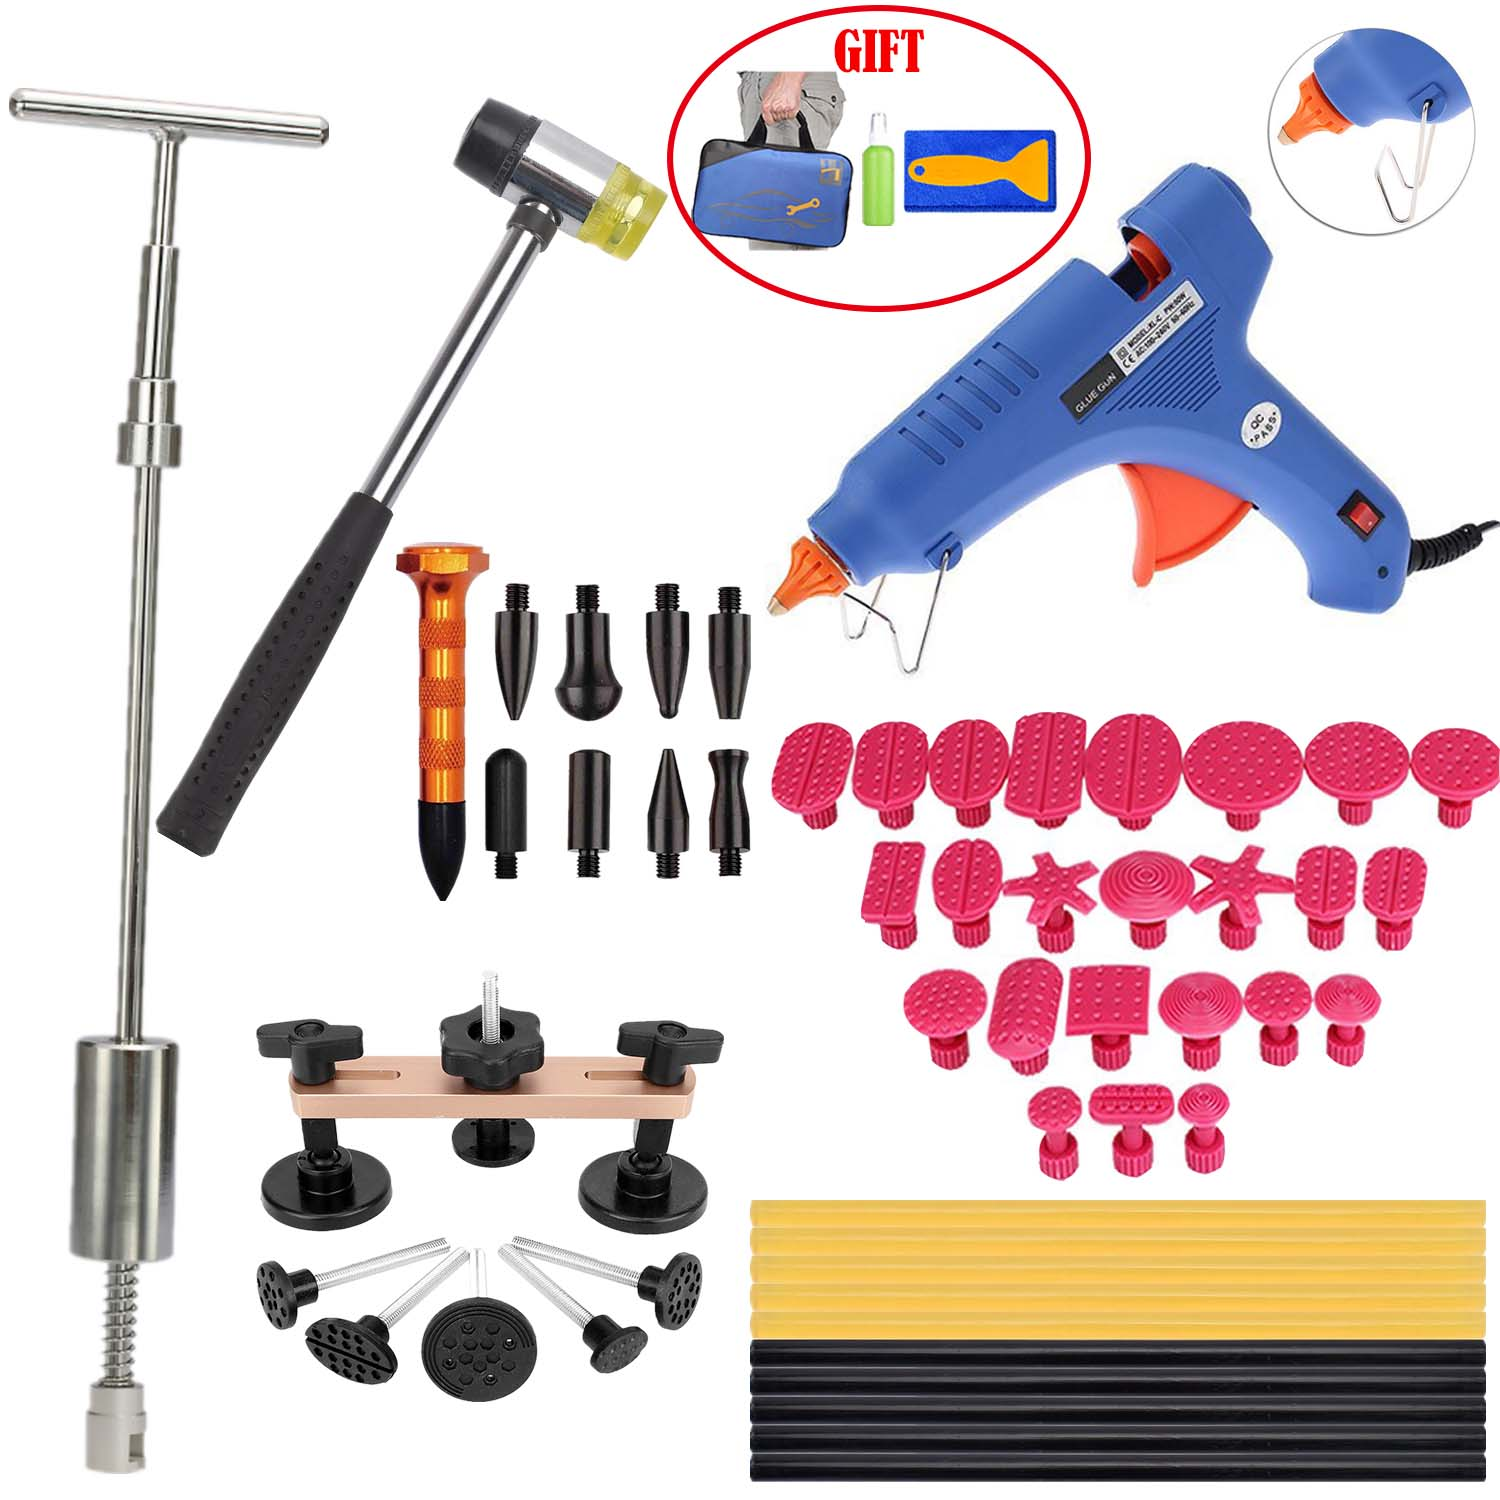 Paintless Dent Repair Tools Removal Kits - Pops a Lifter Bridge Puller PDR Hot